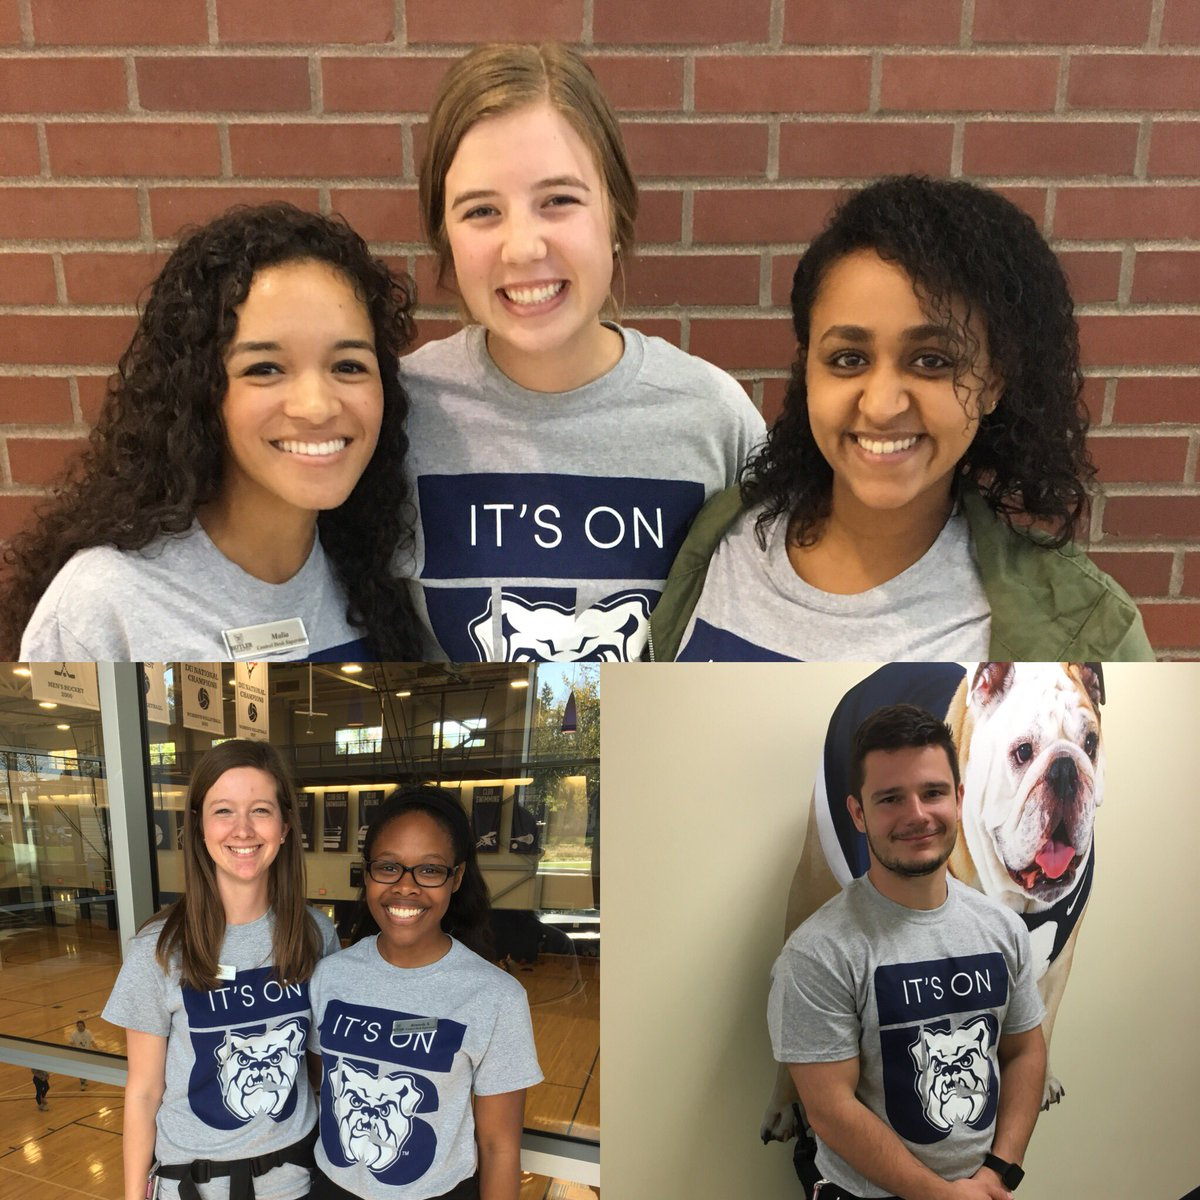 RT @joshuaedowning: @butlerHRC Operations Student Staff supporting @ItsOnUs #ItsOnUsBU https://t.co/7gZzwxcZfV